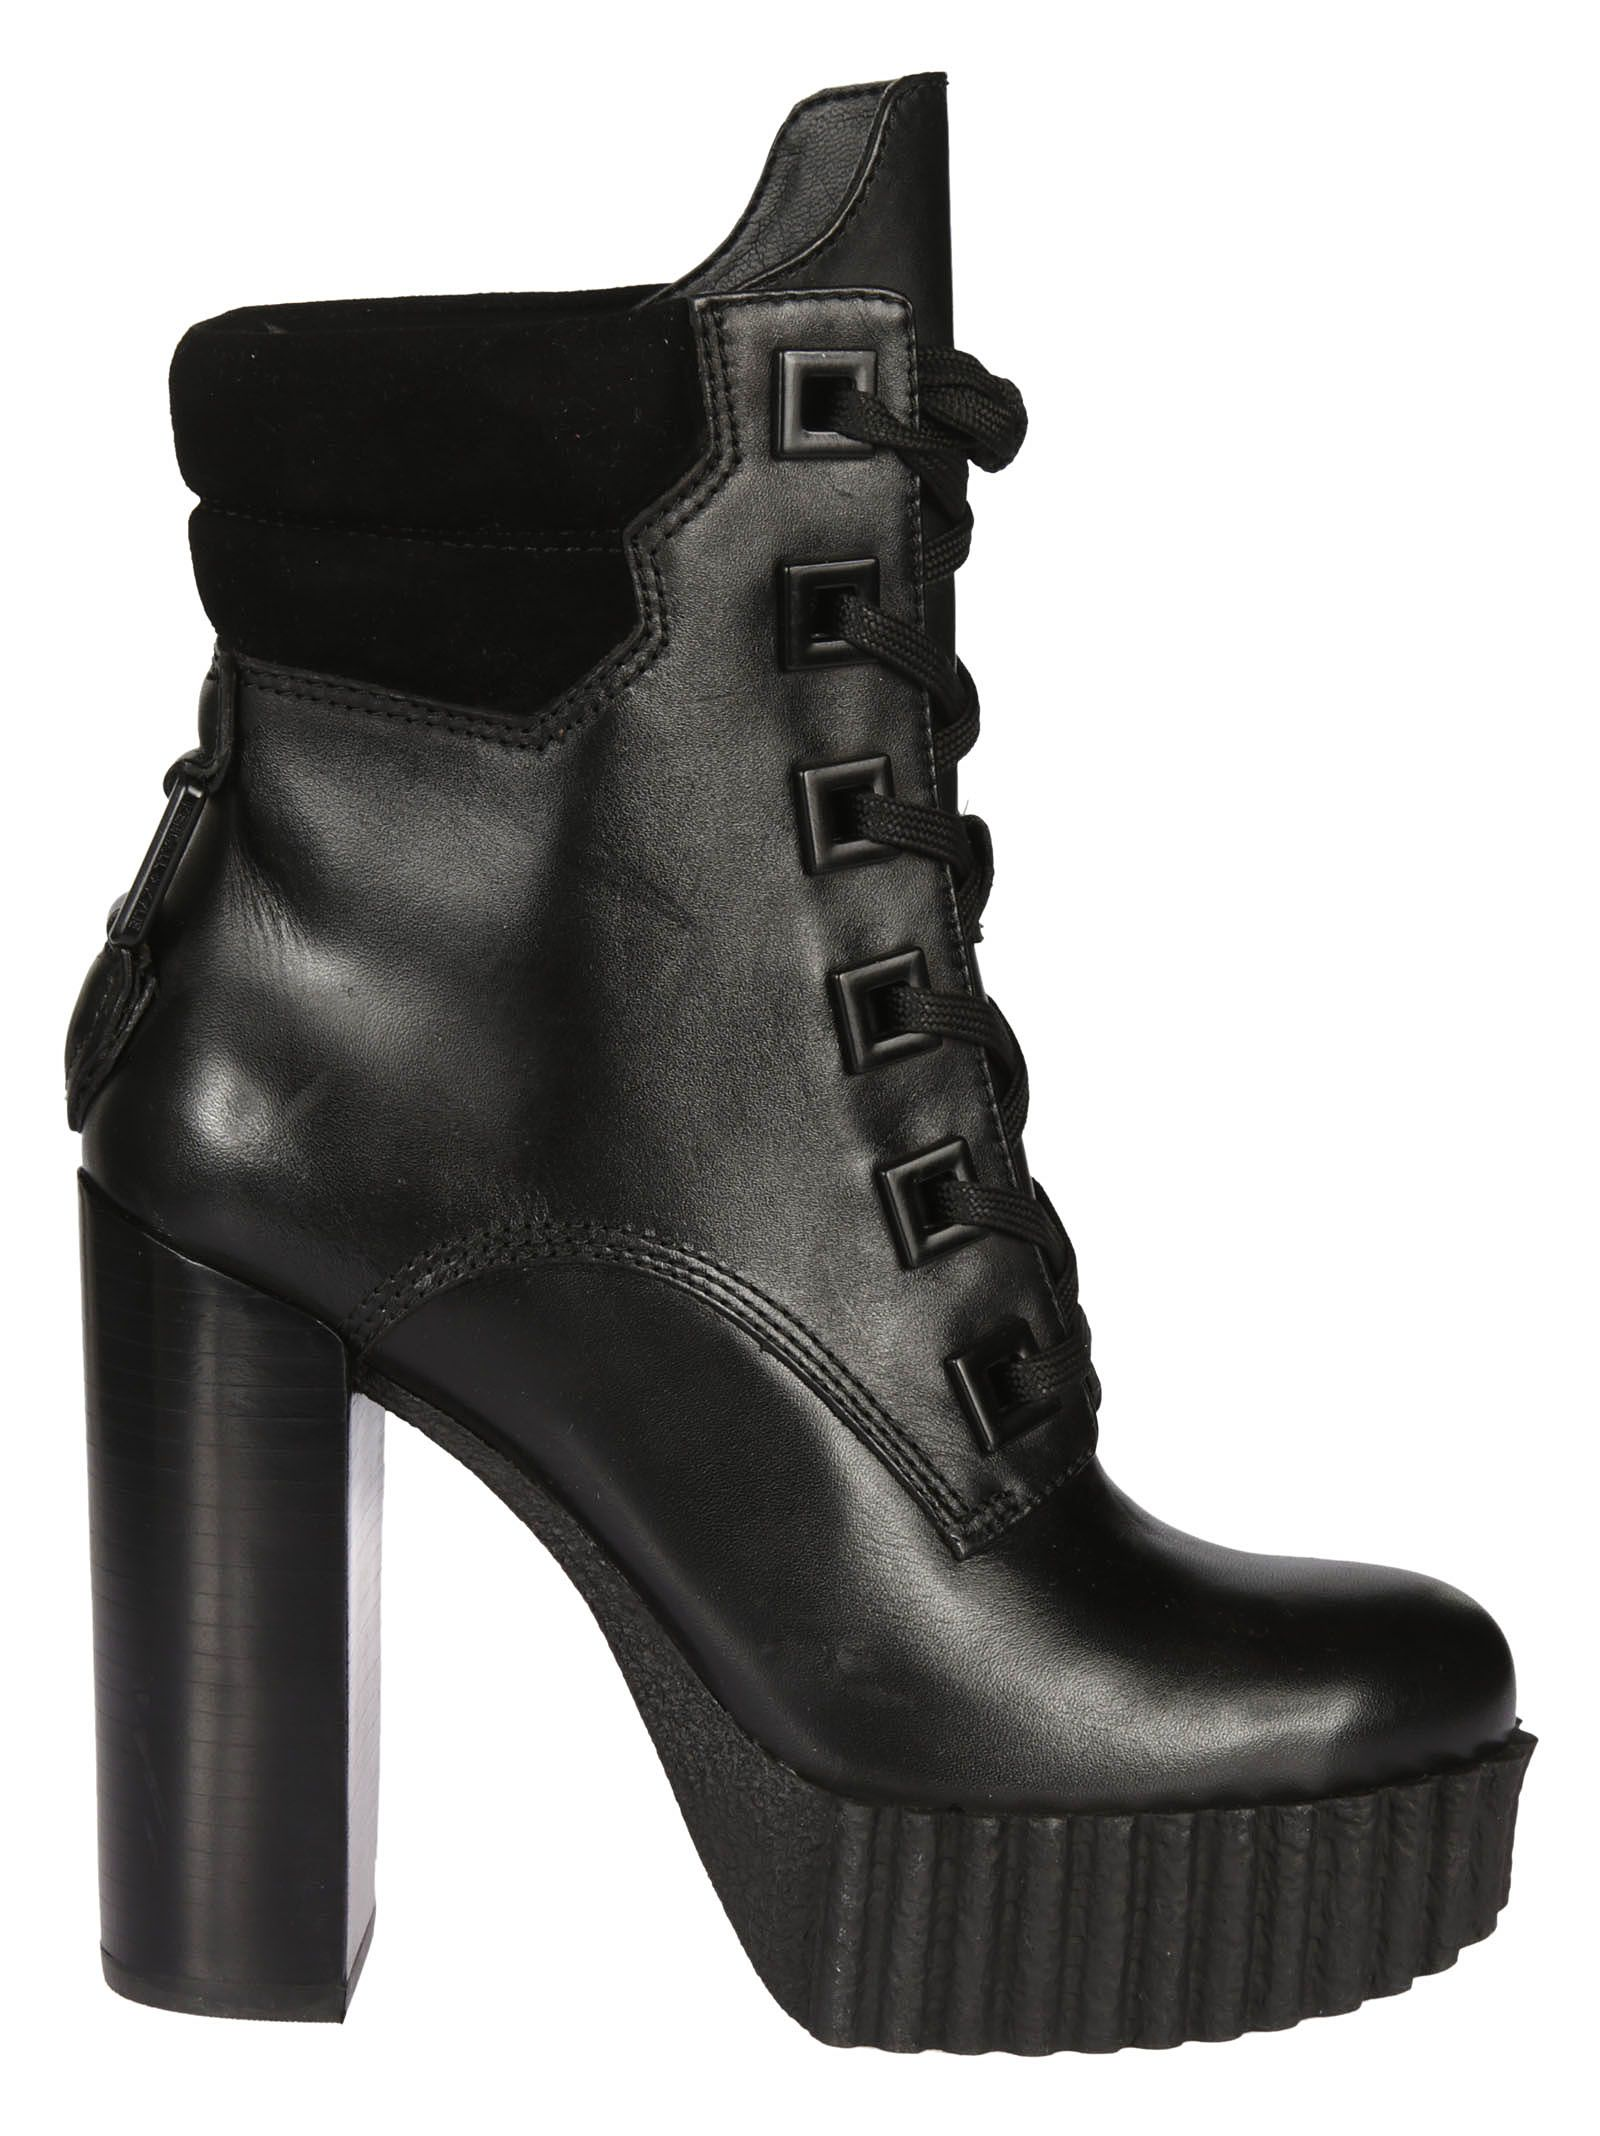 Kendall + Kylie Kendall + Kylie Kkcoty01 Ankle Boots